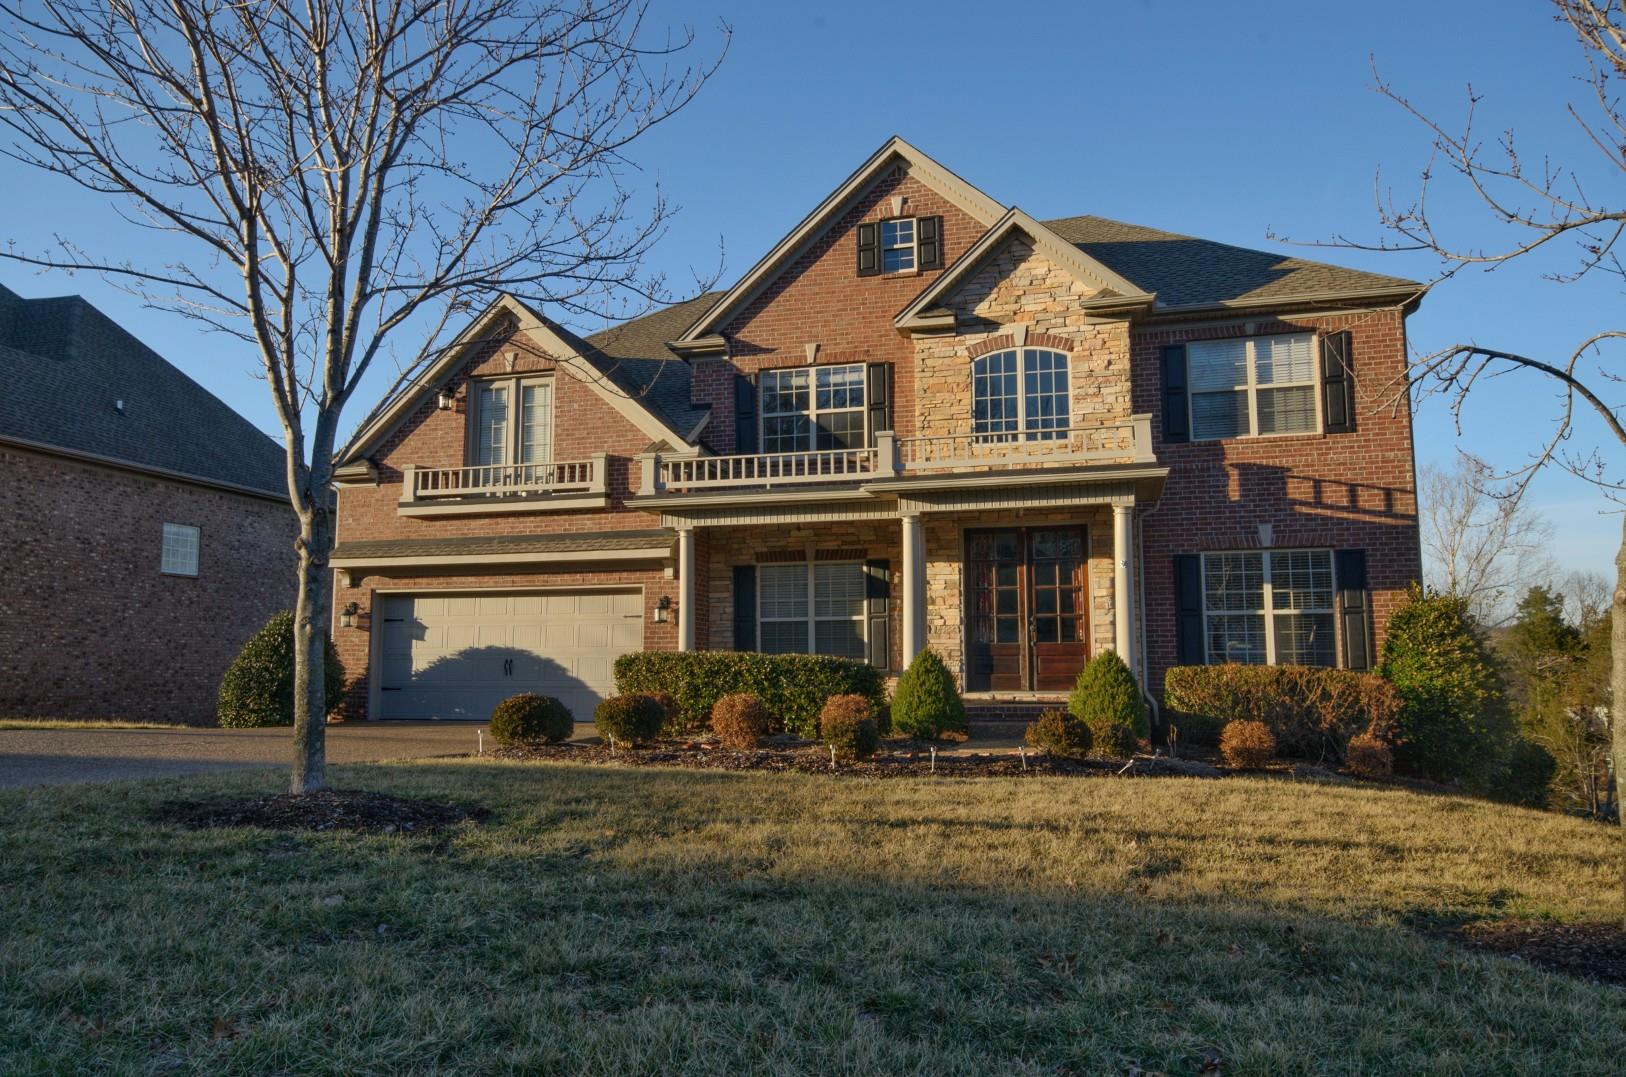 1338 Sweetwater Dr, Brentwood, Tennessee